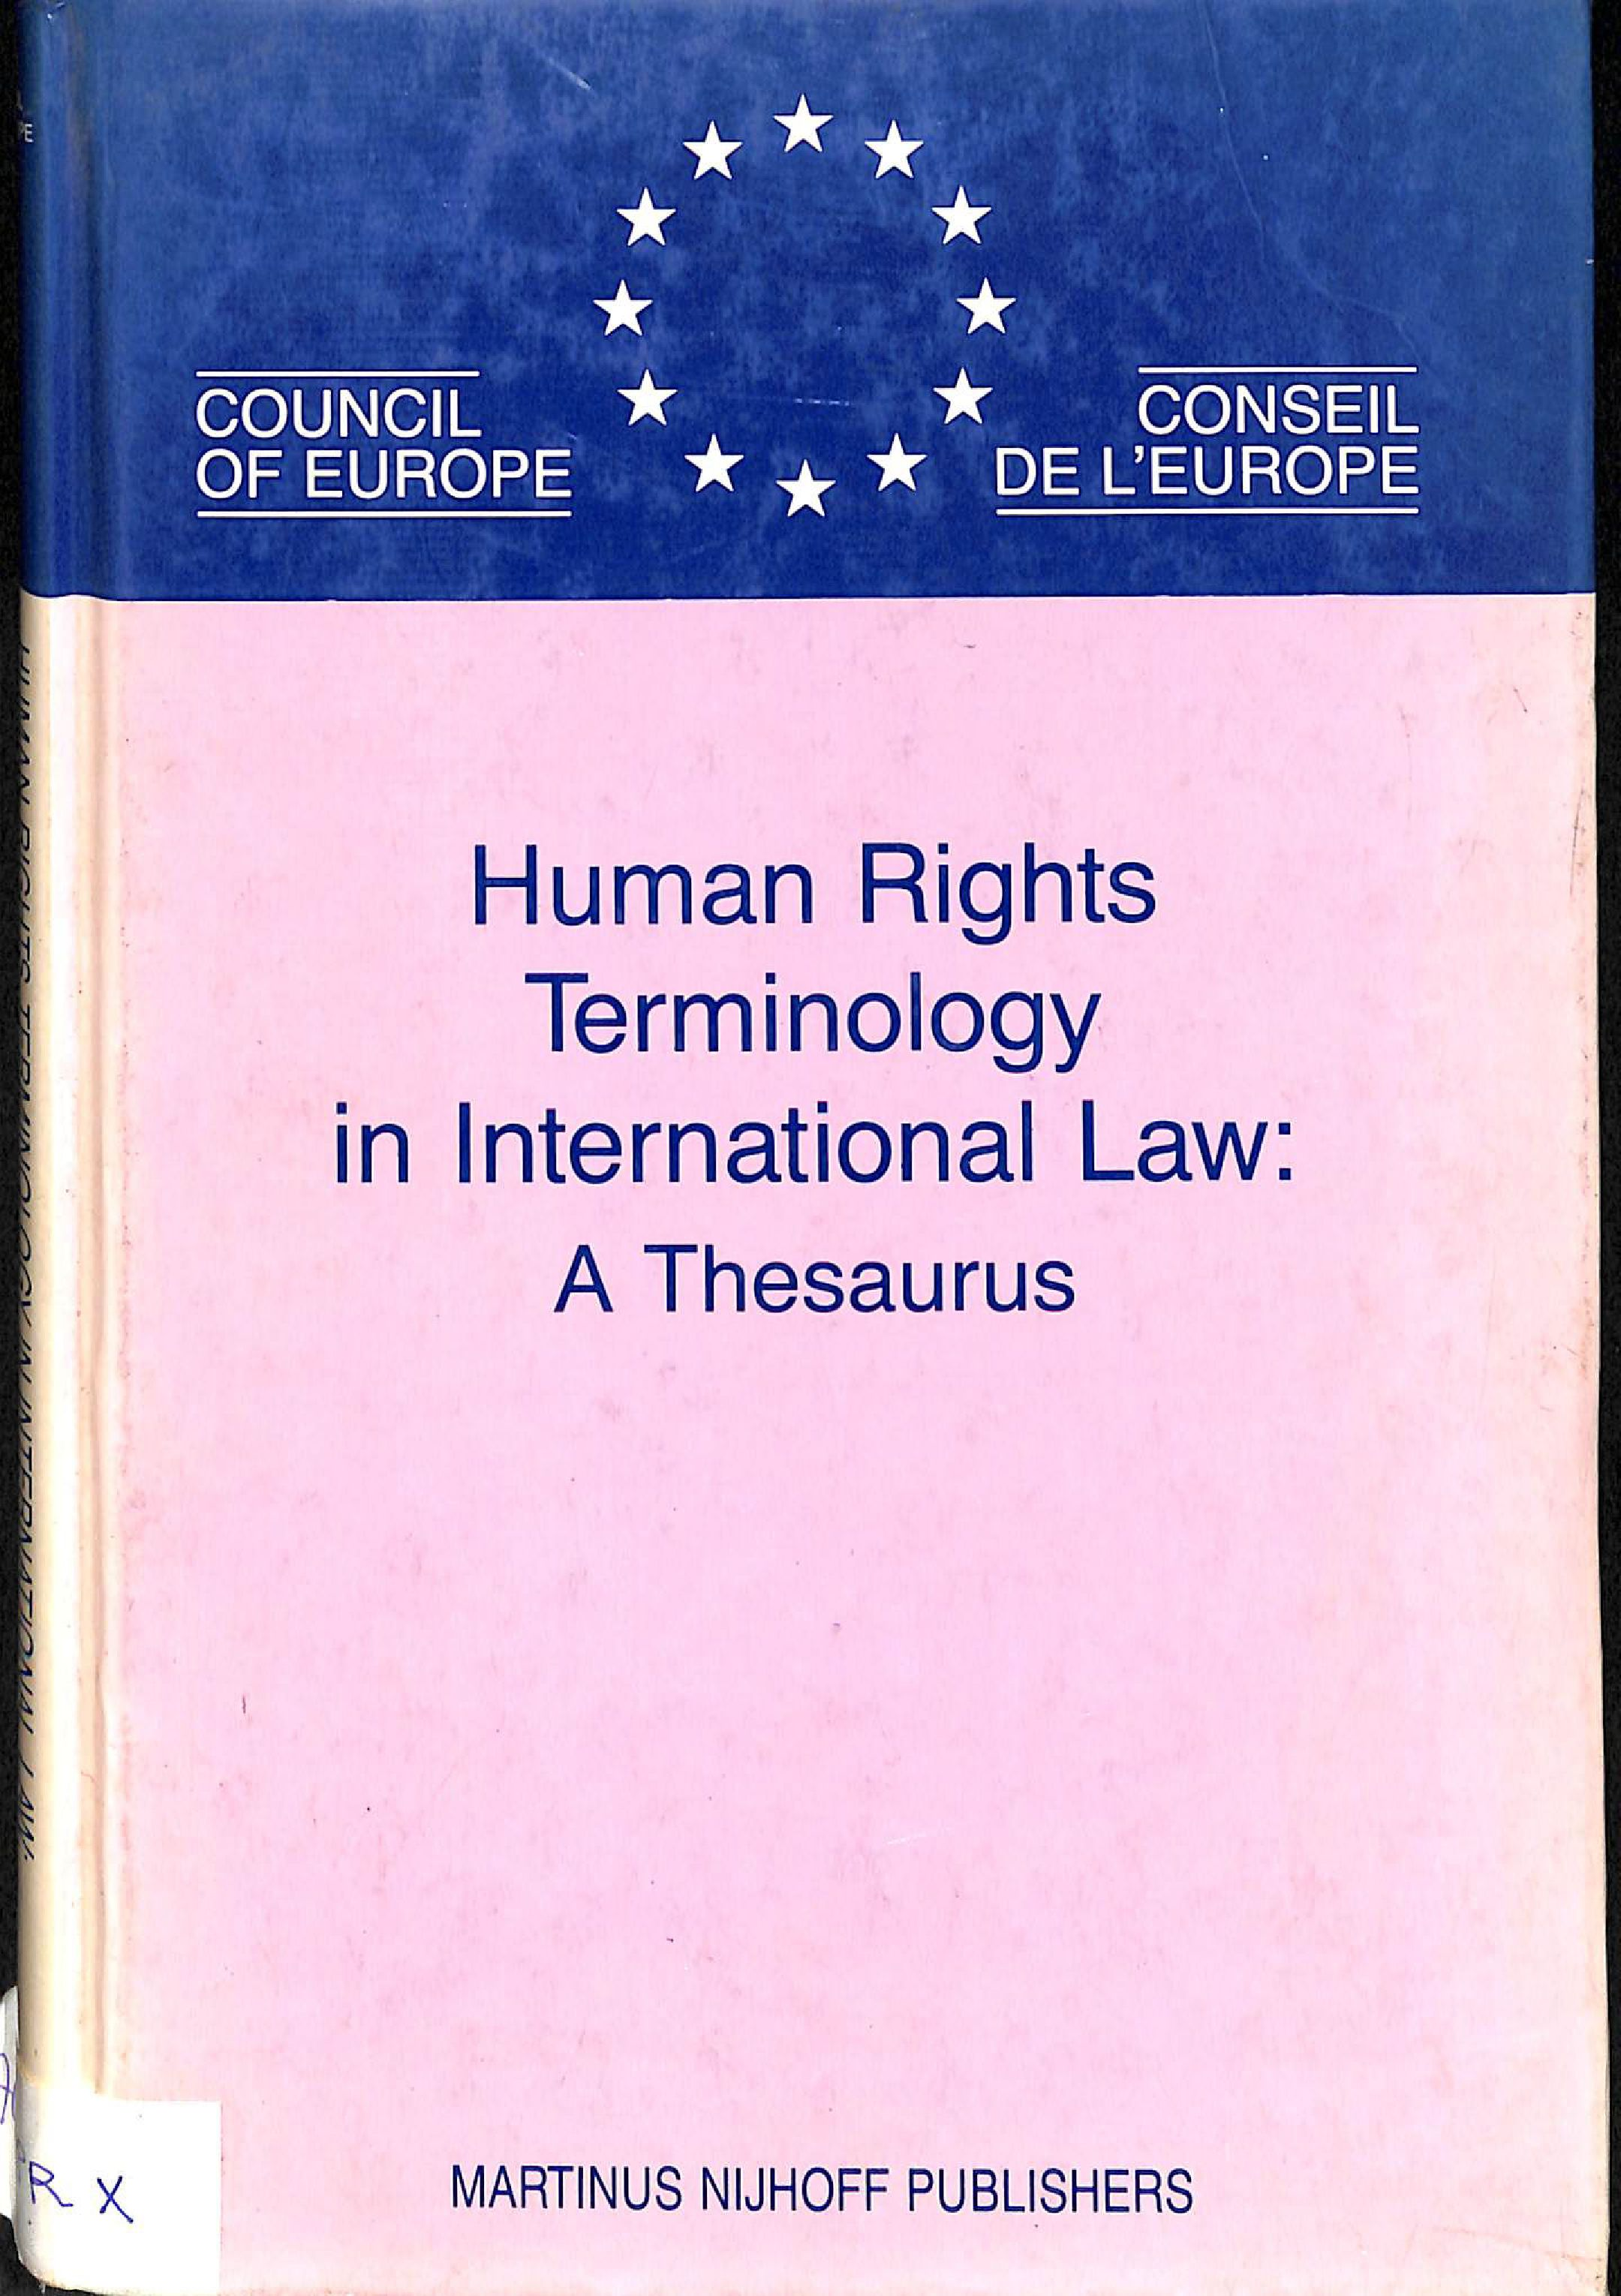 Human rights terminology in international law: A thesaurus